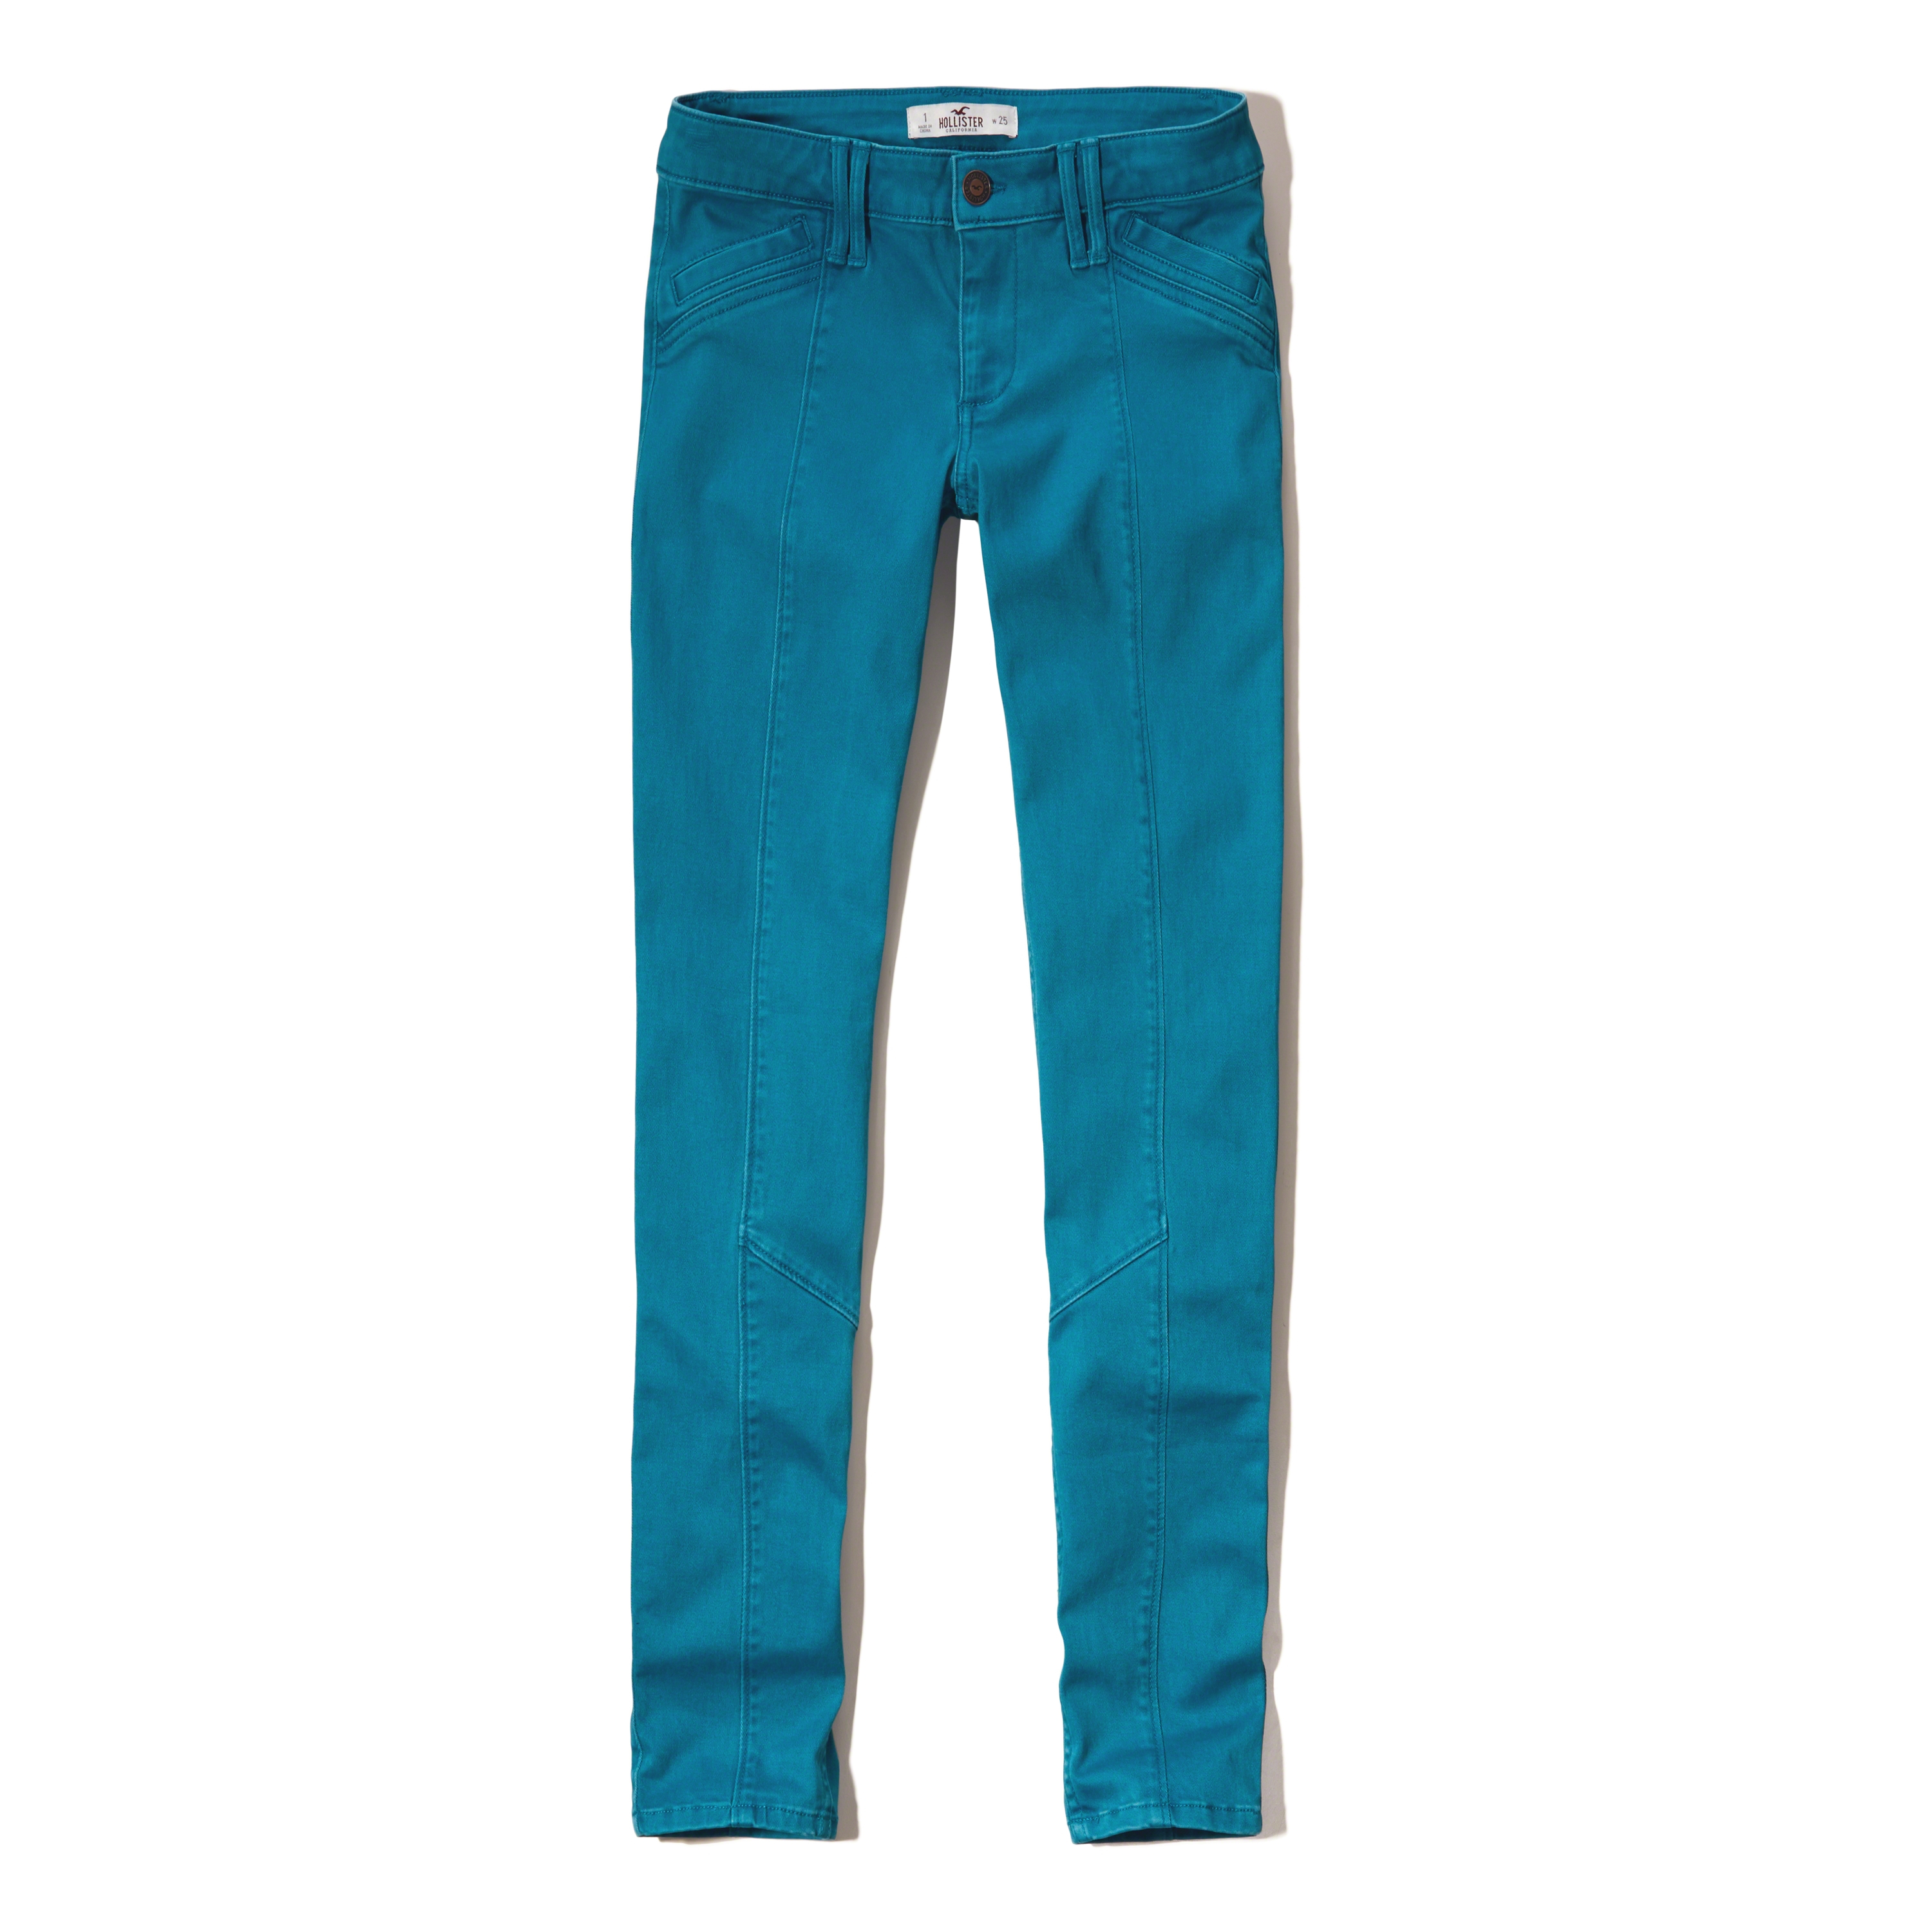 hollister pants for girls - photo #10